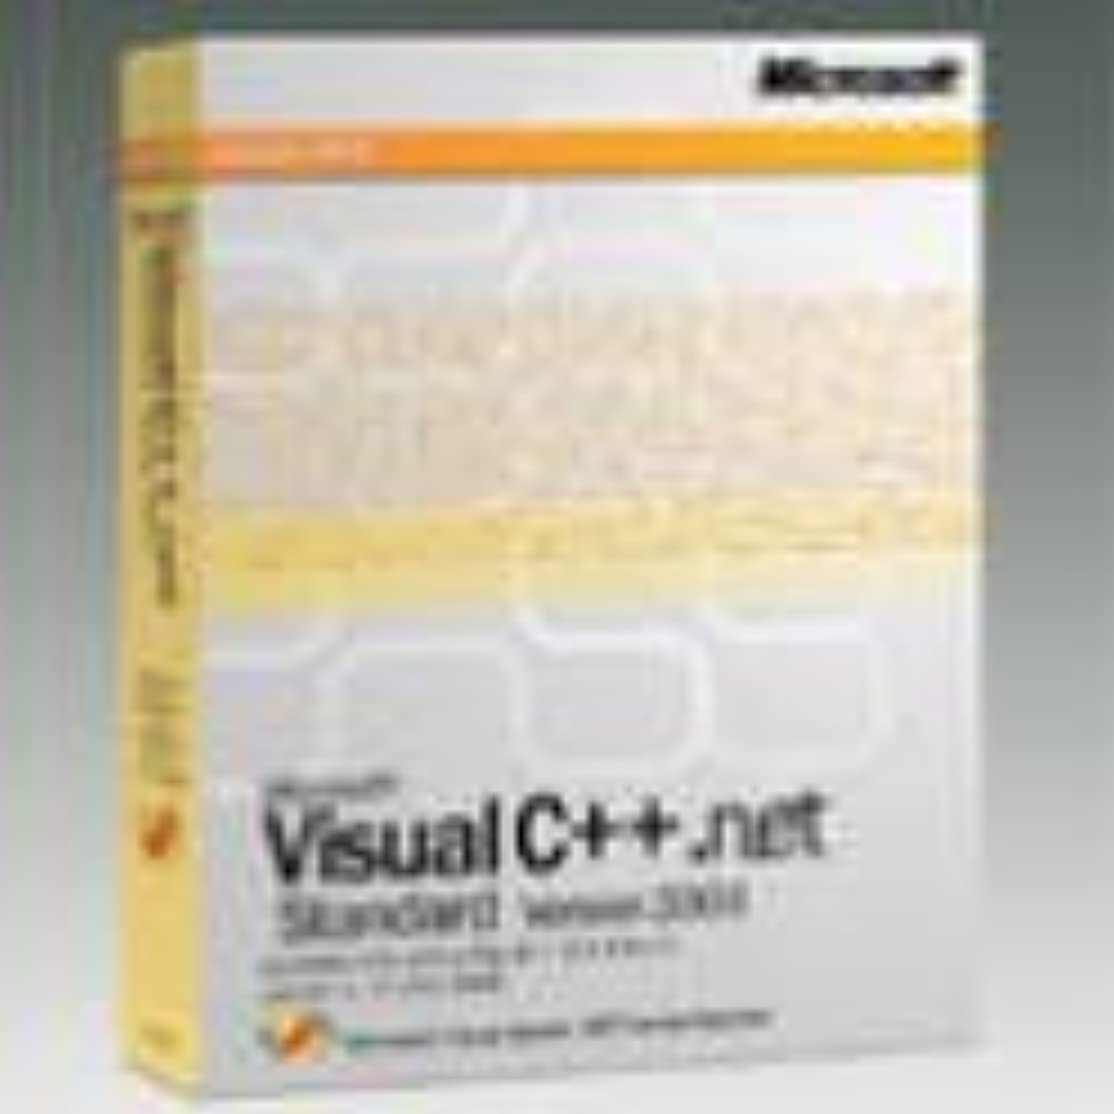 予定ツーリストエンジンMicrosoft Visual C++ .NET Standard Version 2003